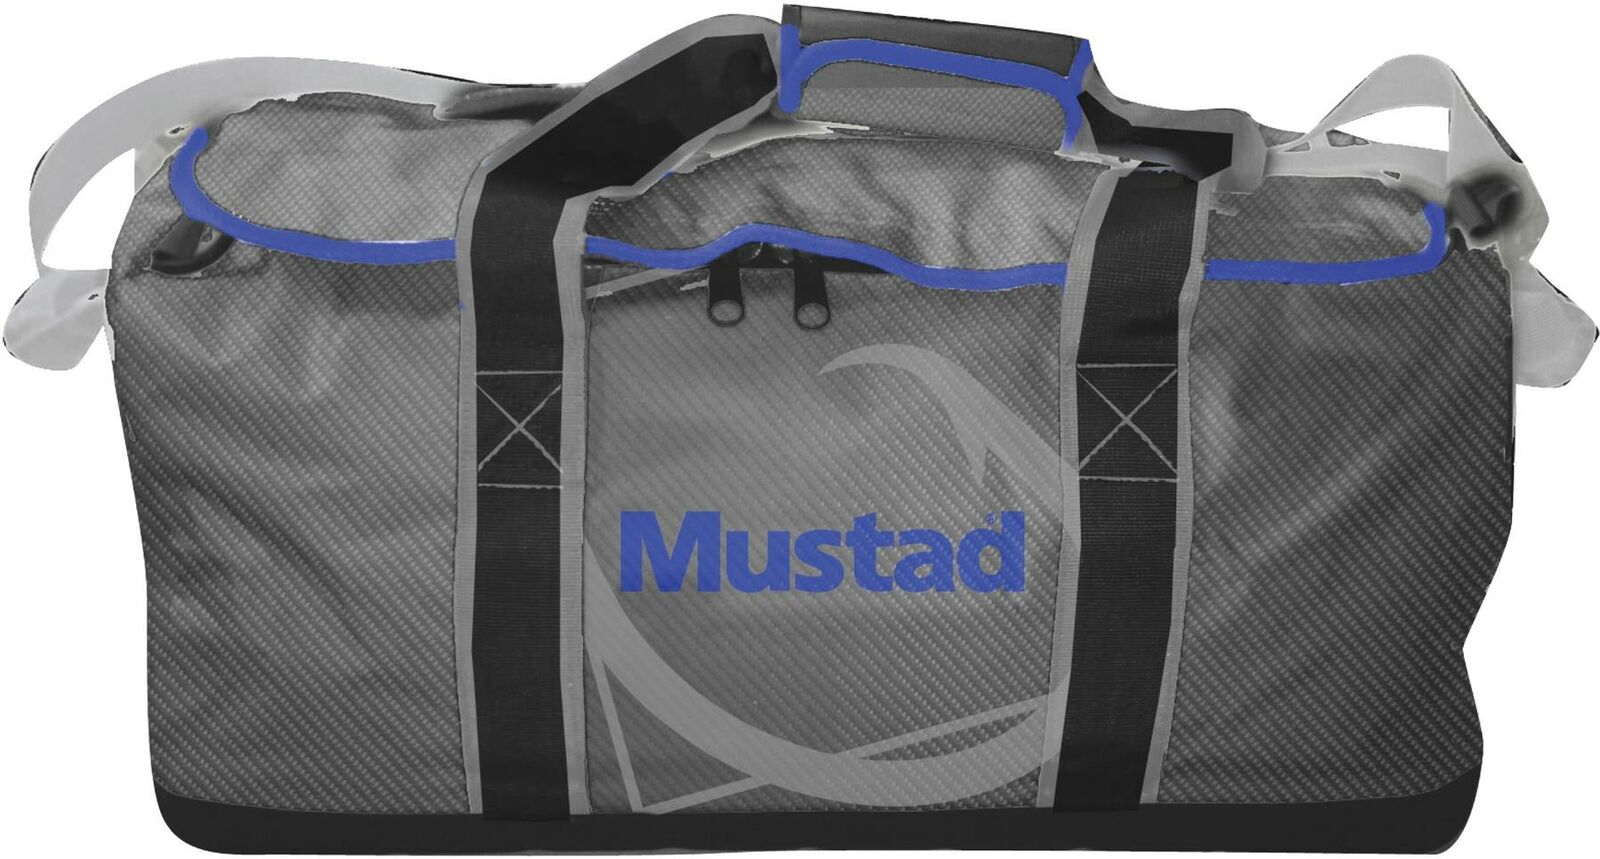 Mustad Boat Bag 18  500D Tarpaulin PVC   Fishing